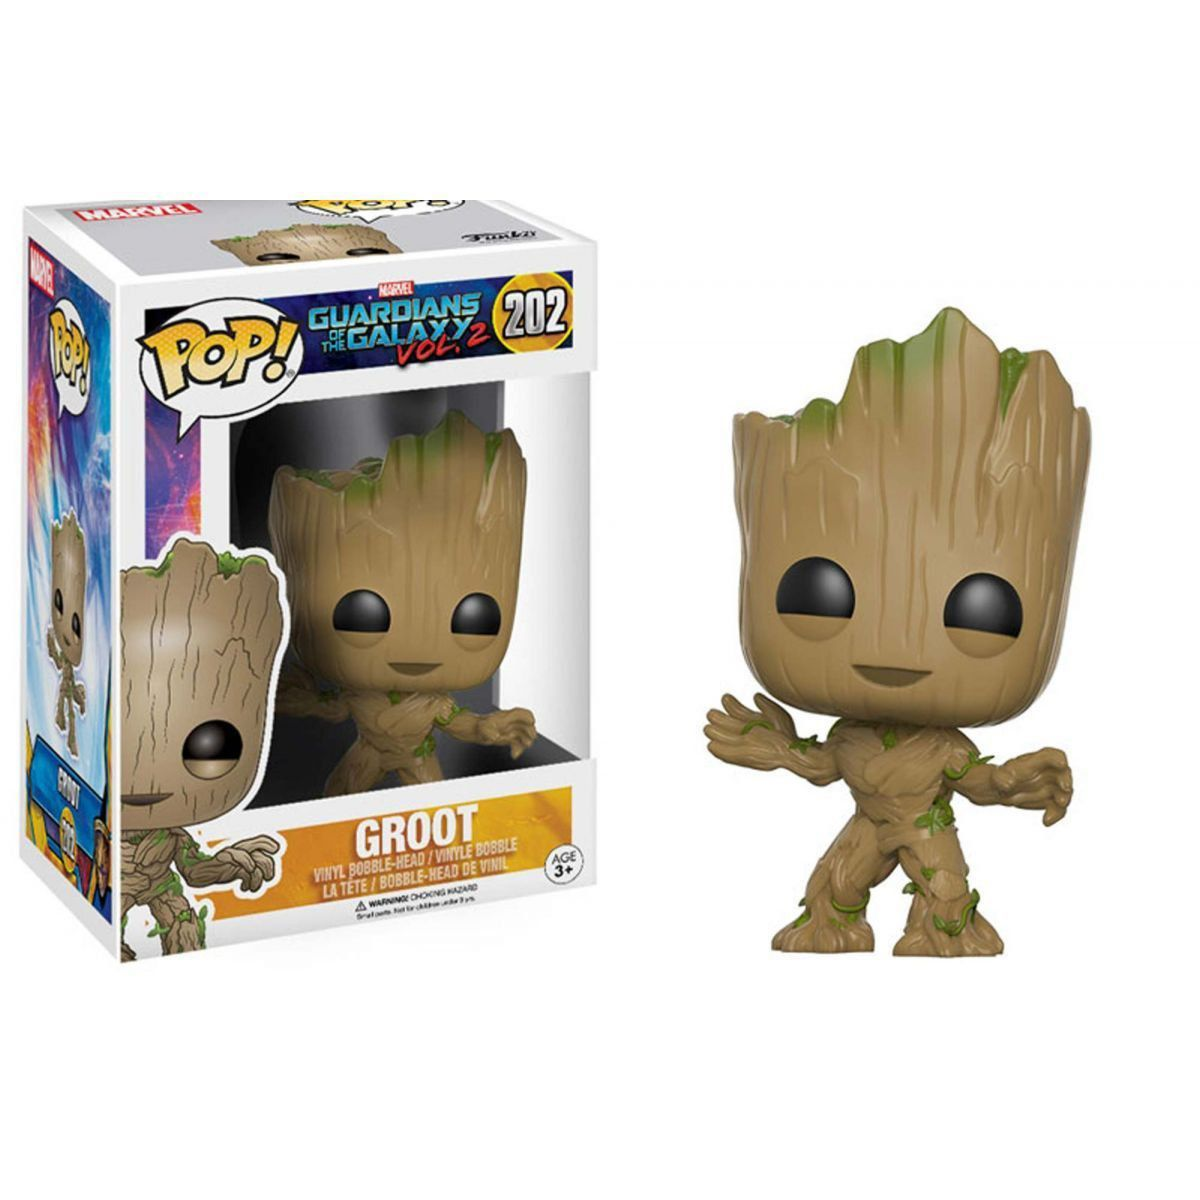 Funko Pop Groot: Guardiões da Galaxia Vol. 2 #202 - Funko